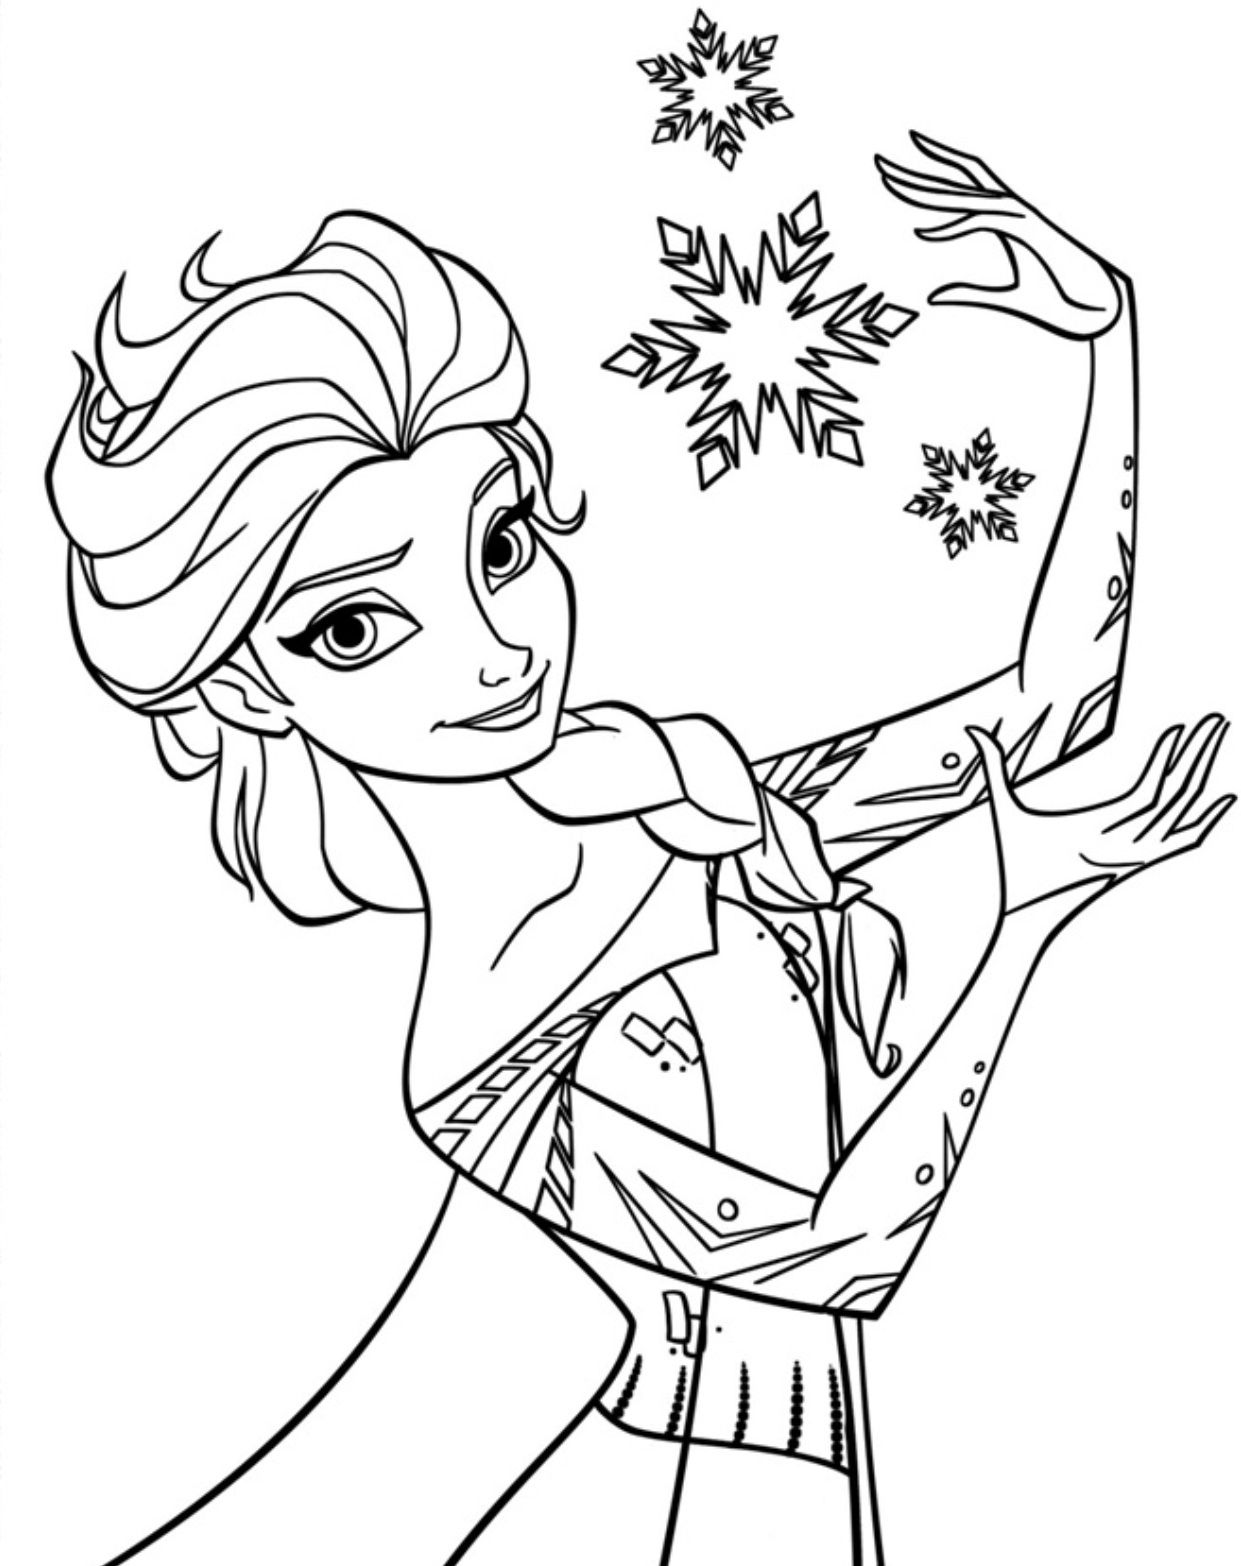 Frozen printable coloring book - Frozen Callering Pages Download And Print Printable Frozen Coloring Page